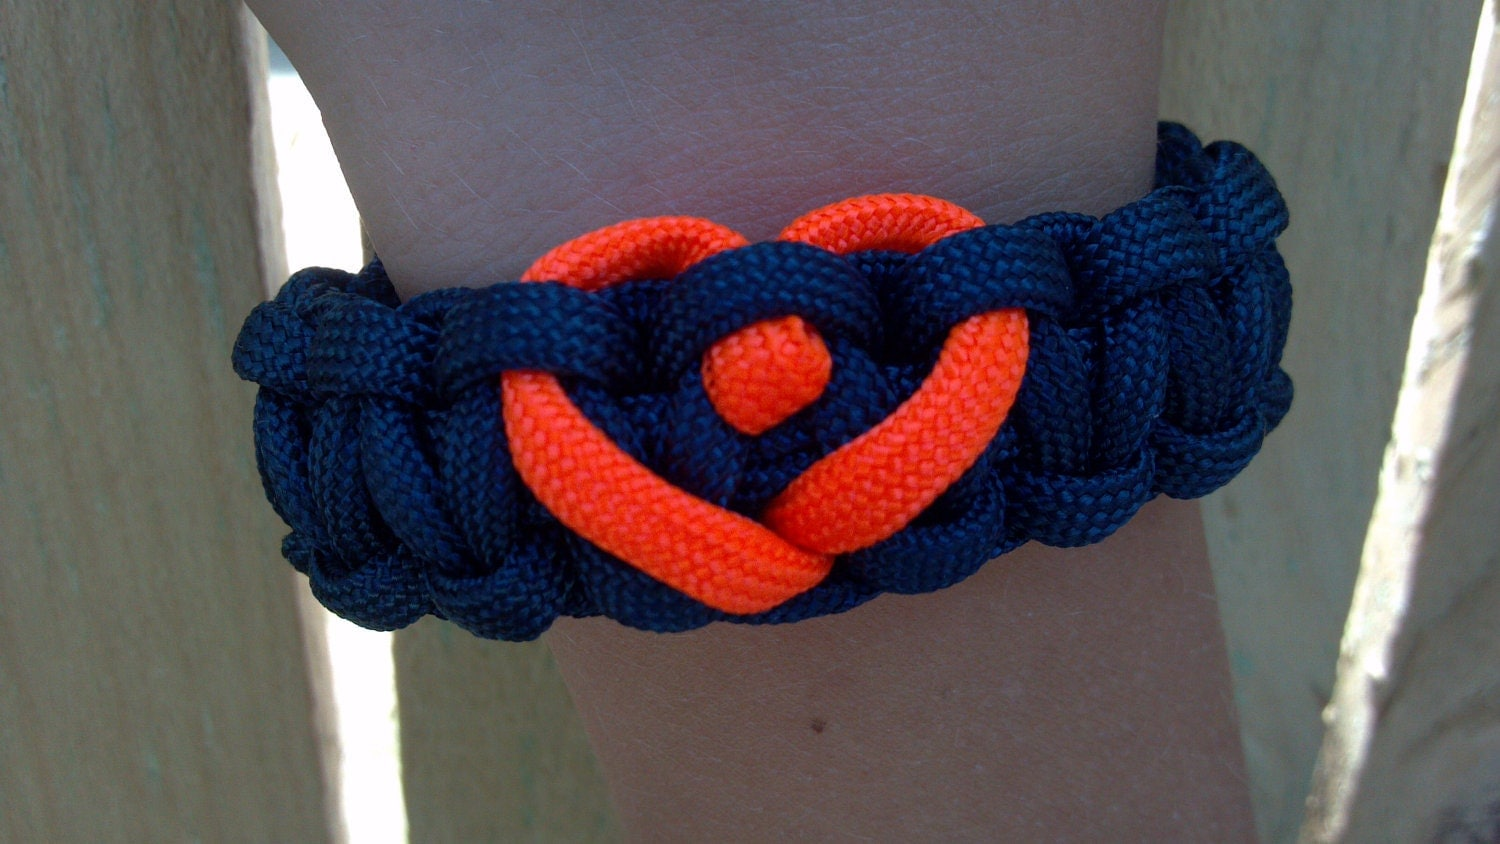 detroit tigers themed paracord bracelet with custom